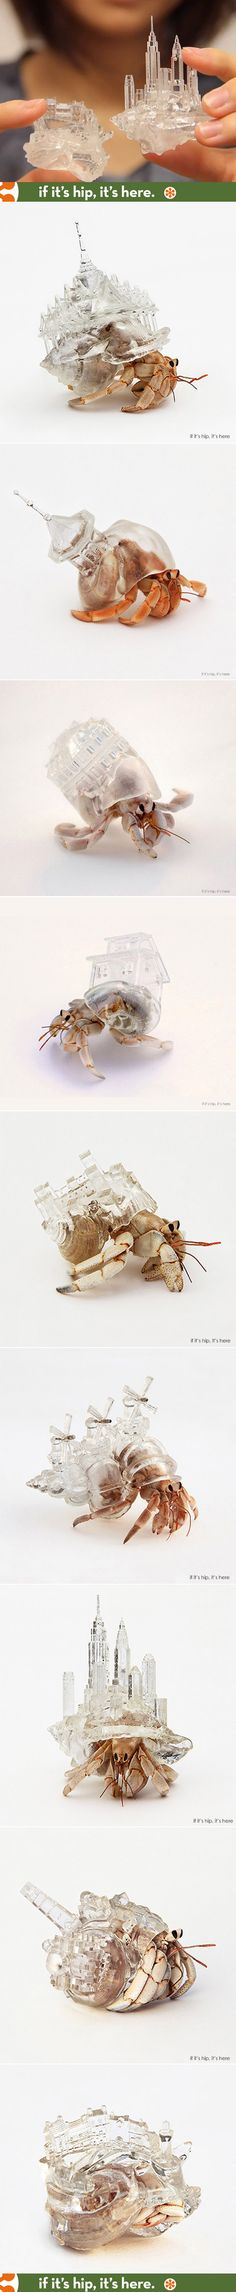 Artist Aki Inomata's 3D-printed acrylic shells for the hermit crab. See the entire project at http://www.ifitshipitshere.com/hermit-crabs-don-3d-printed-cityscapes-shells-project-migration/